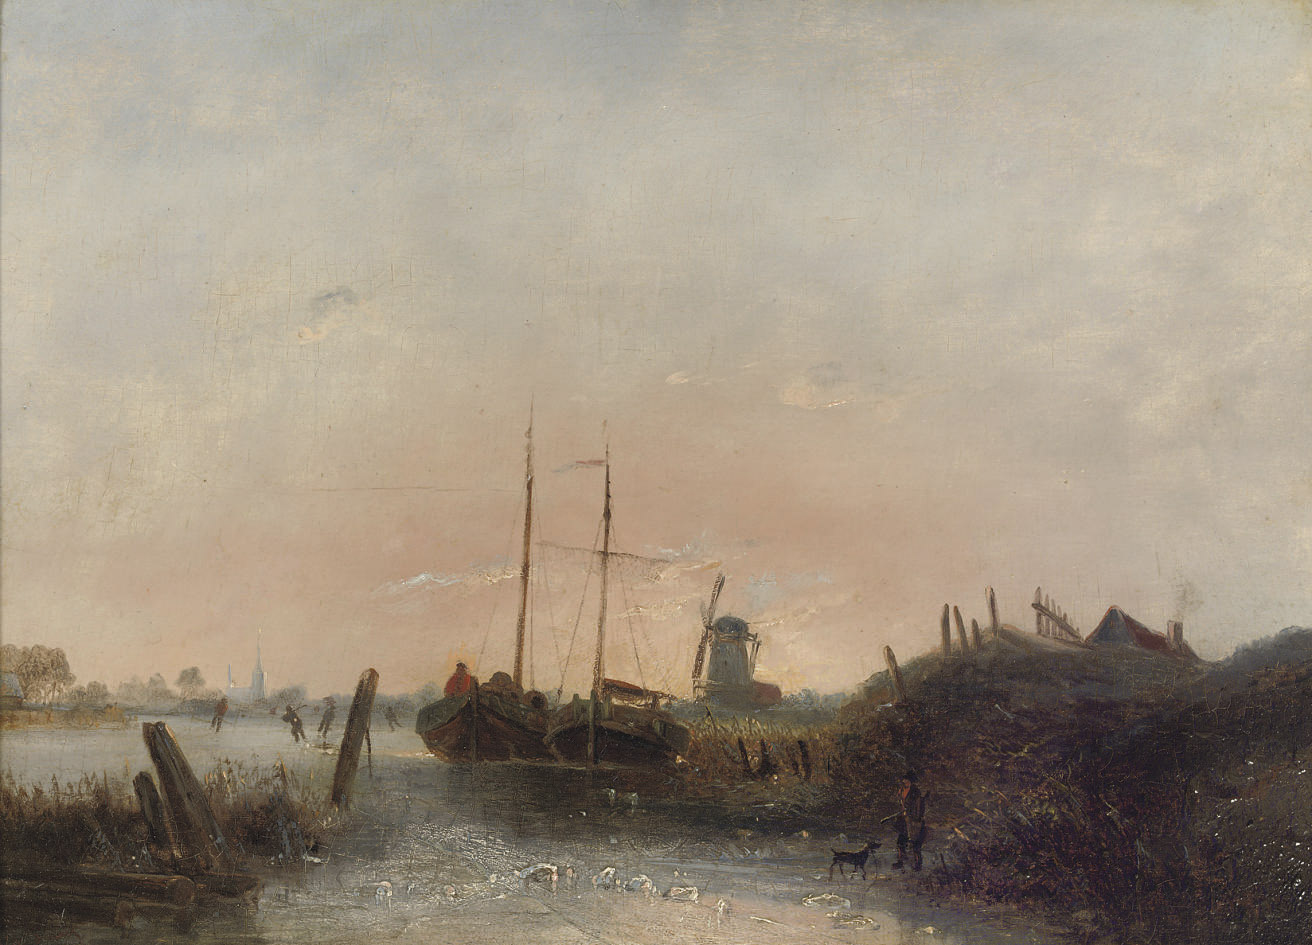 Moored boats on a frozen river